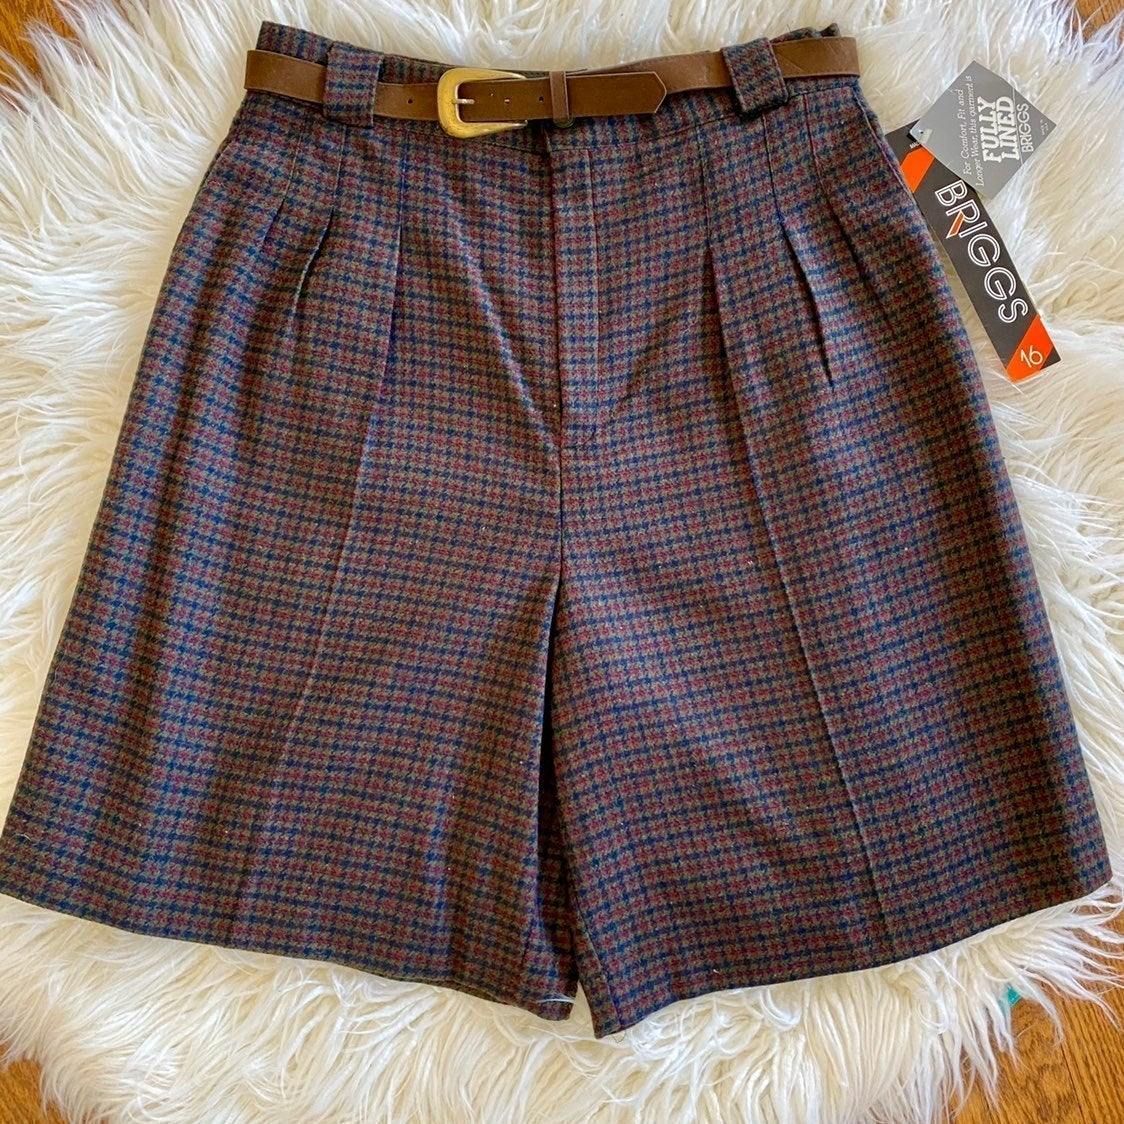 Vintage 80s High Waisted Wool Shorts NWT